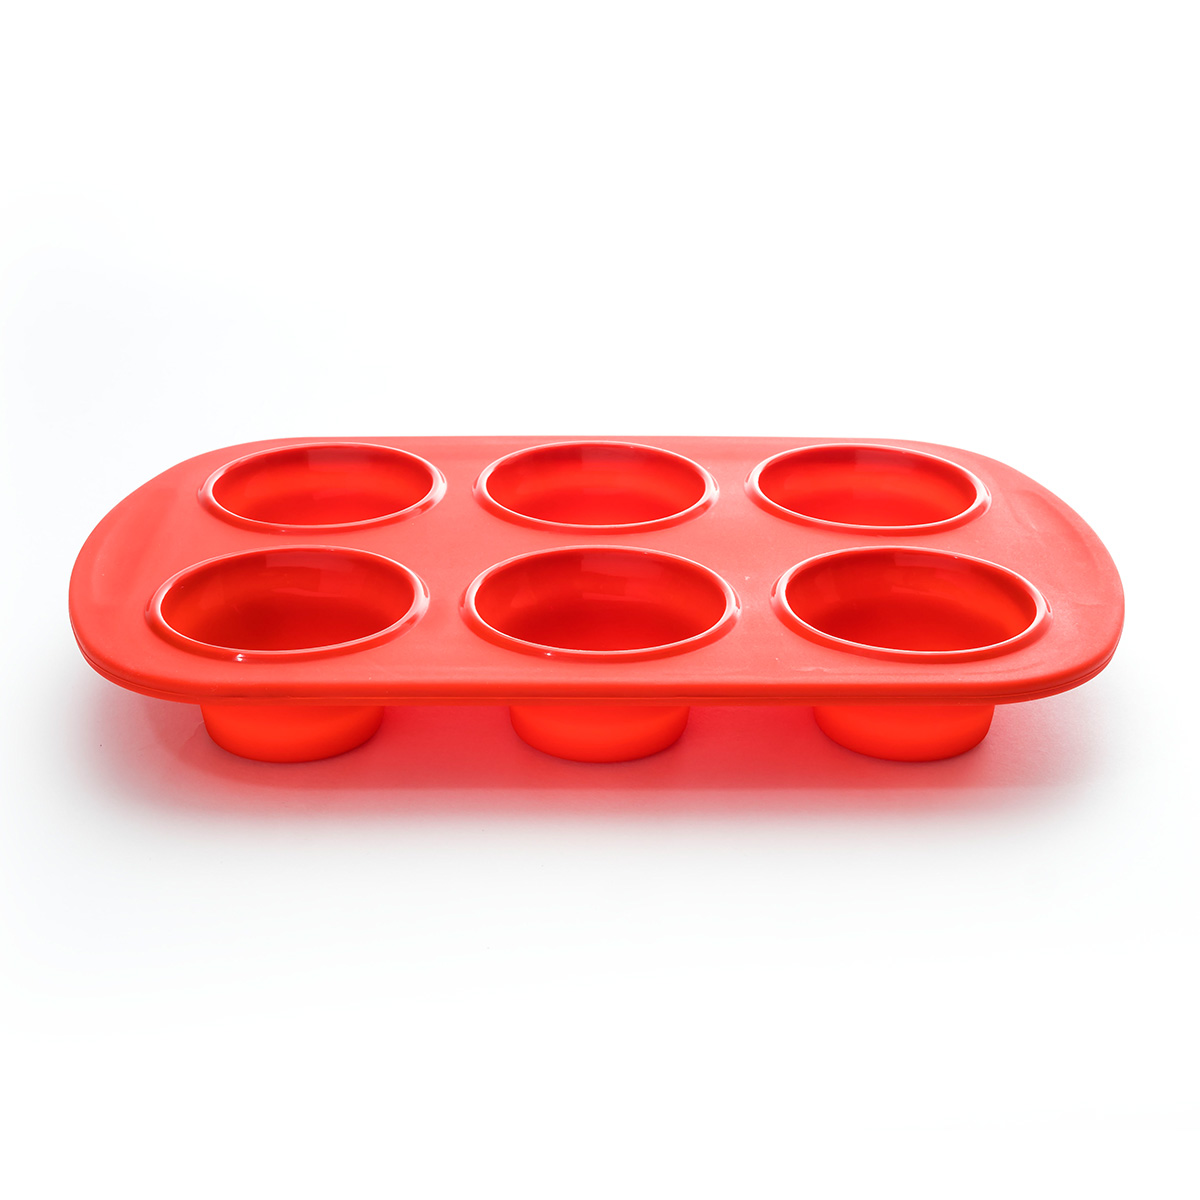 Cook-039-s-Companion-4-Piece-Collapsible-Silicone-Bakeware-Set thumbnail 15